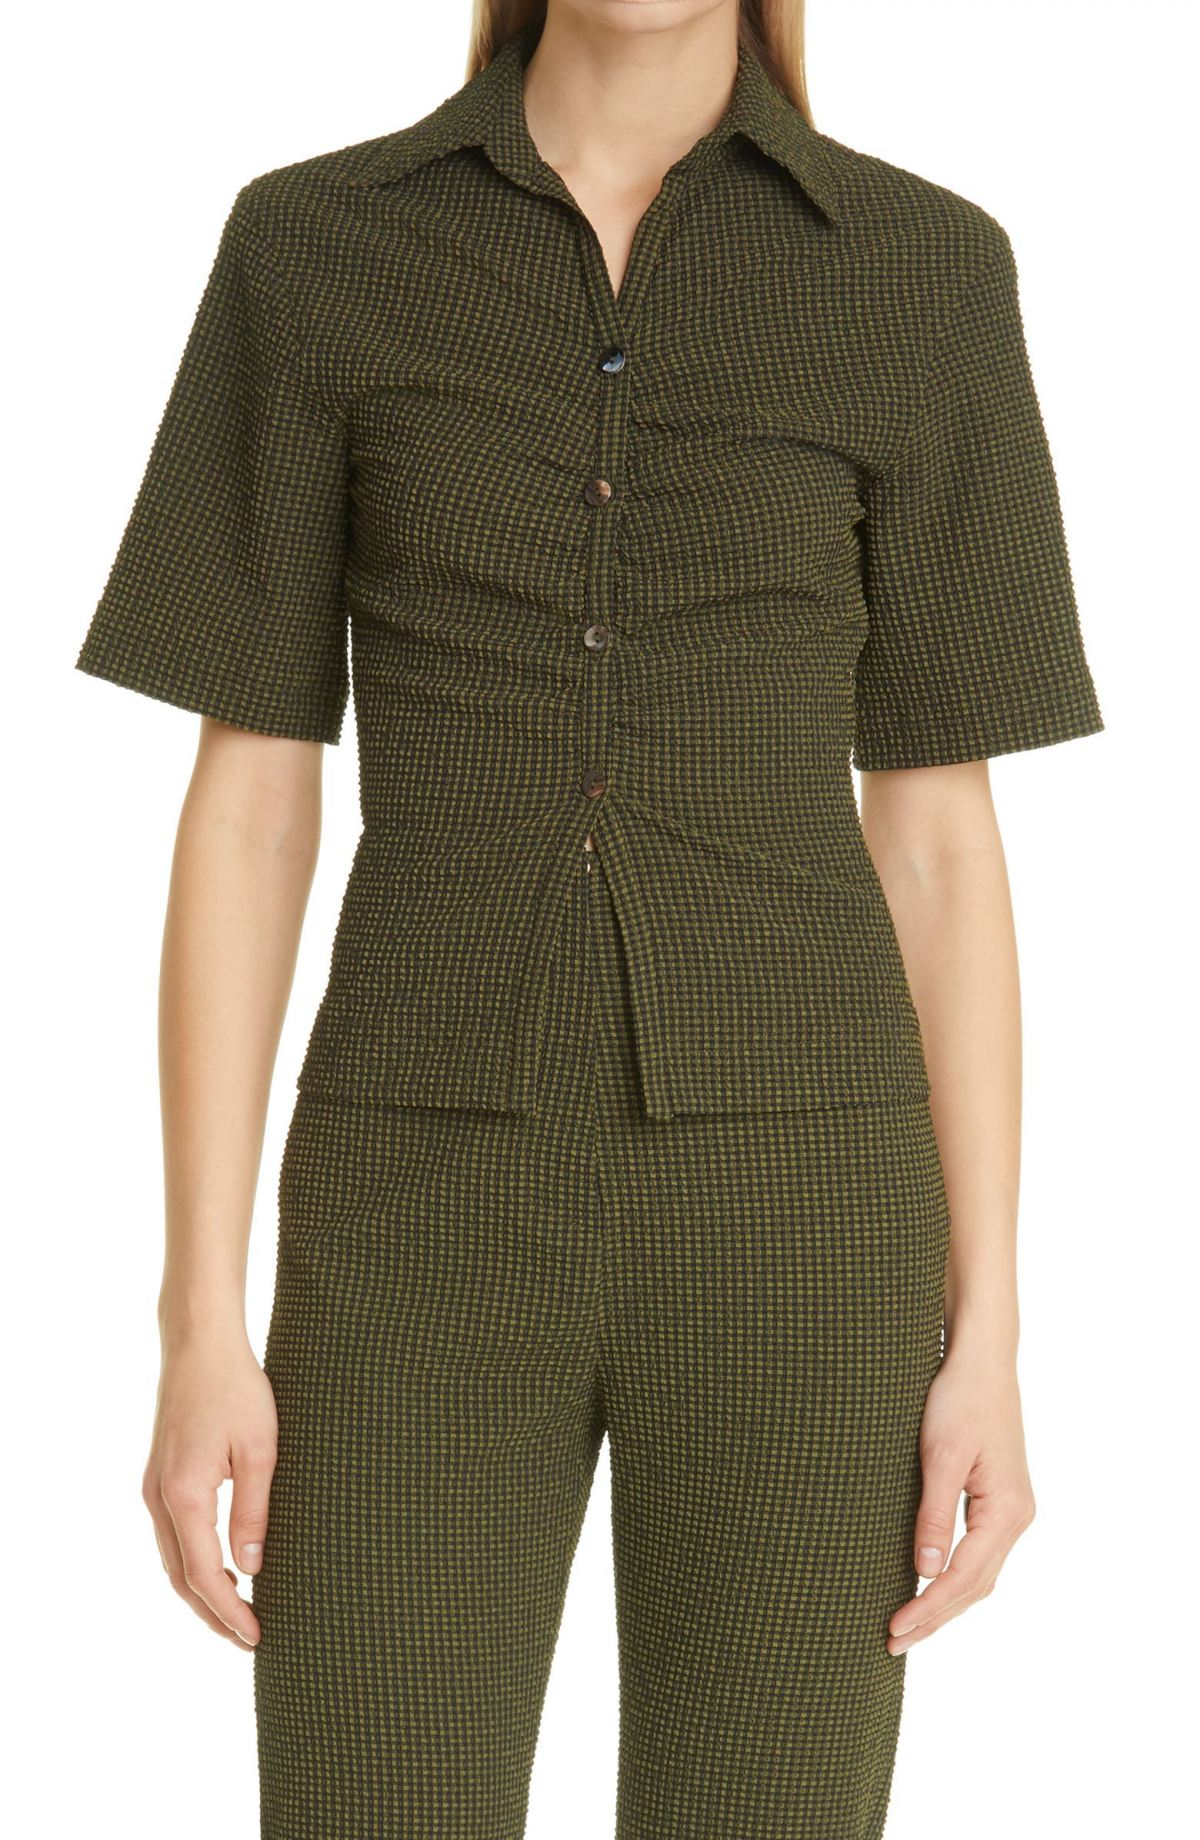 Saff Puckered Check Button-Up Shirt by NANUSHKA, available on nordstrom.ca Selena Gomez Top Exact Product